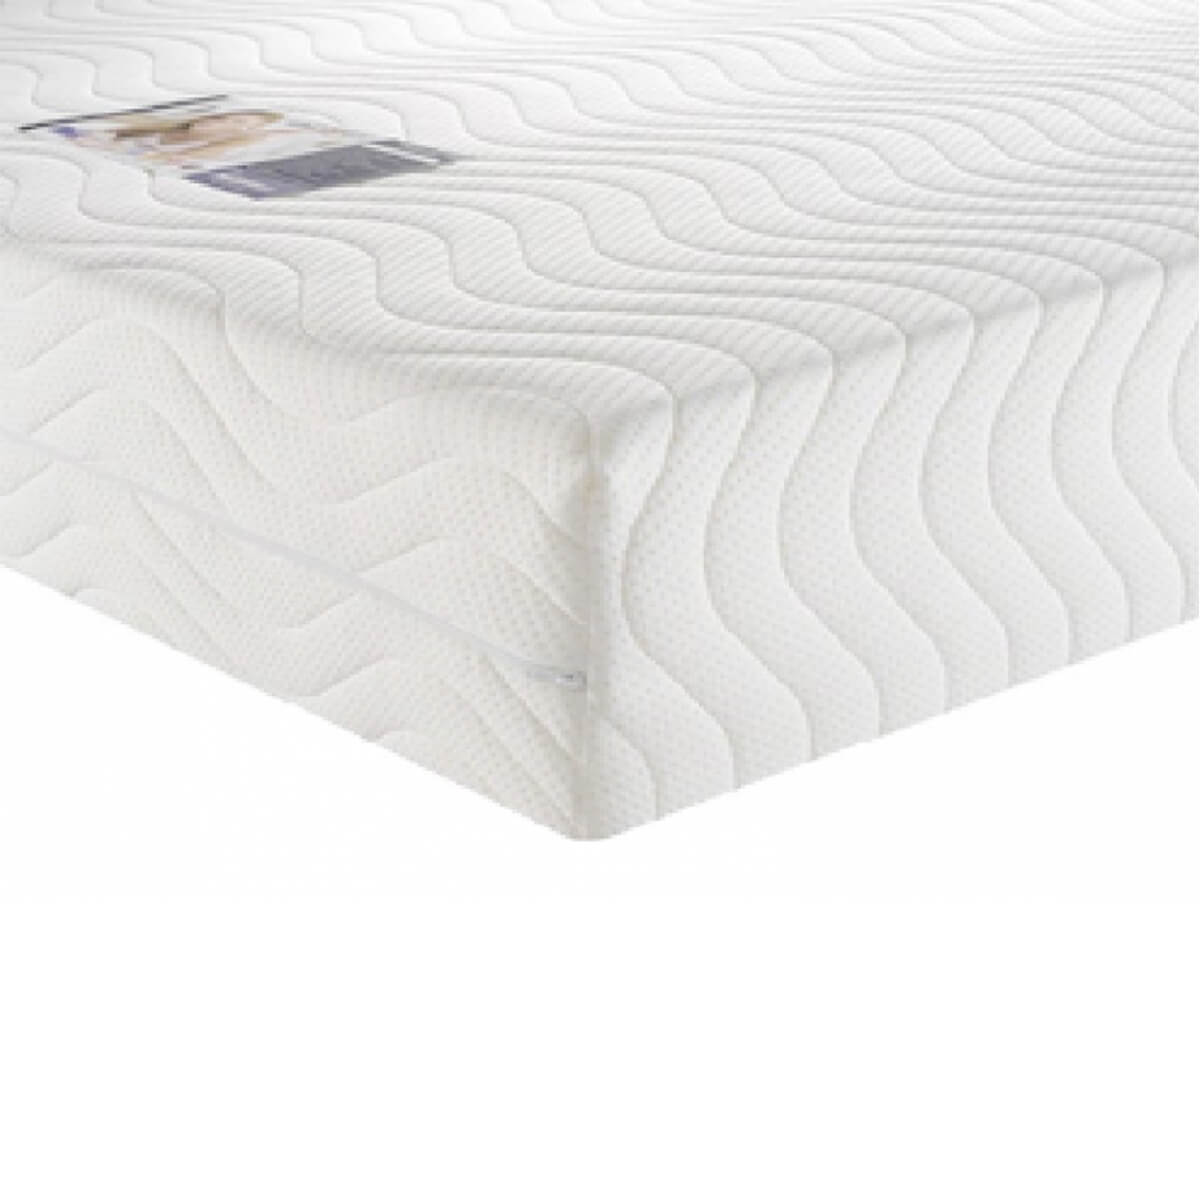 Concept Premium 3000 Memory Foam Mattress (Mattress Size: 60 Super King)